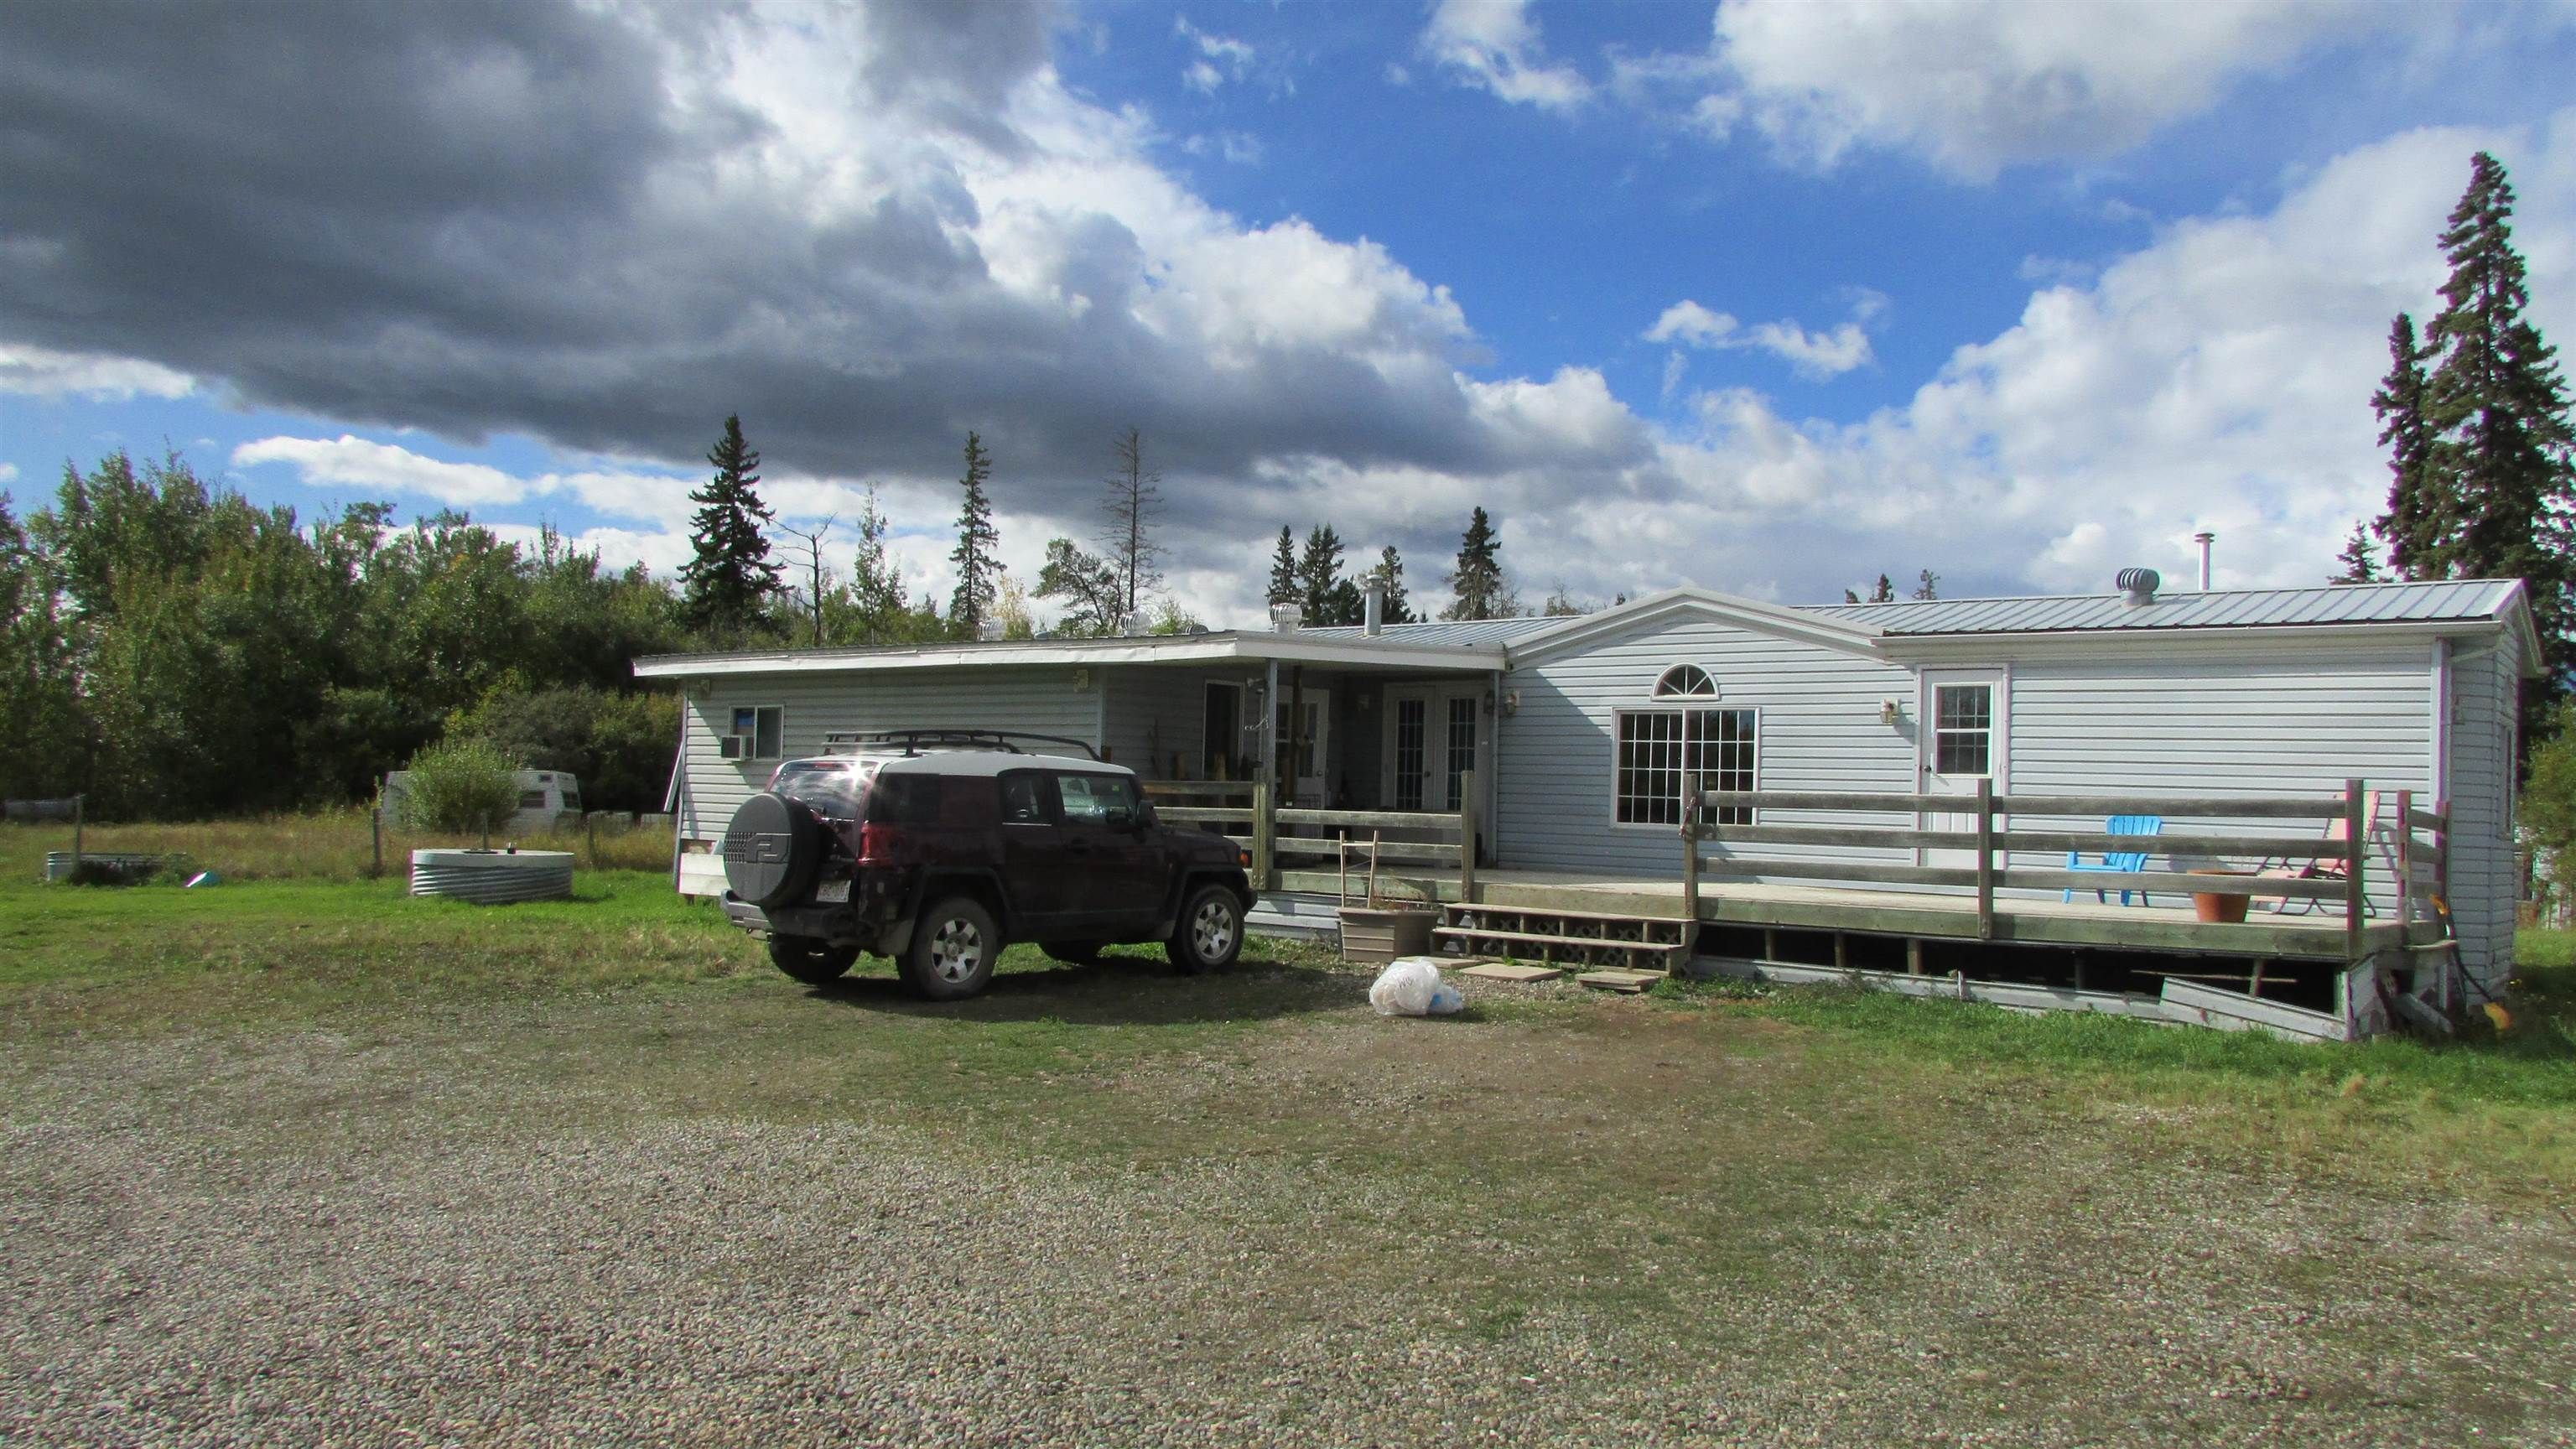 """Main Photo: 9512 259 Road in Fort St. John: Fort St. John - Rural E 100th Manufactured Home for sale in """"SWANSON LUMBER ROAD"""" (Fort St. John (Zone 60))  : MLS®# R2618672"""